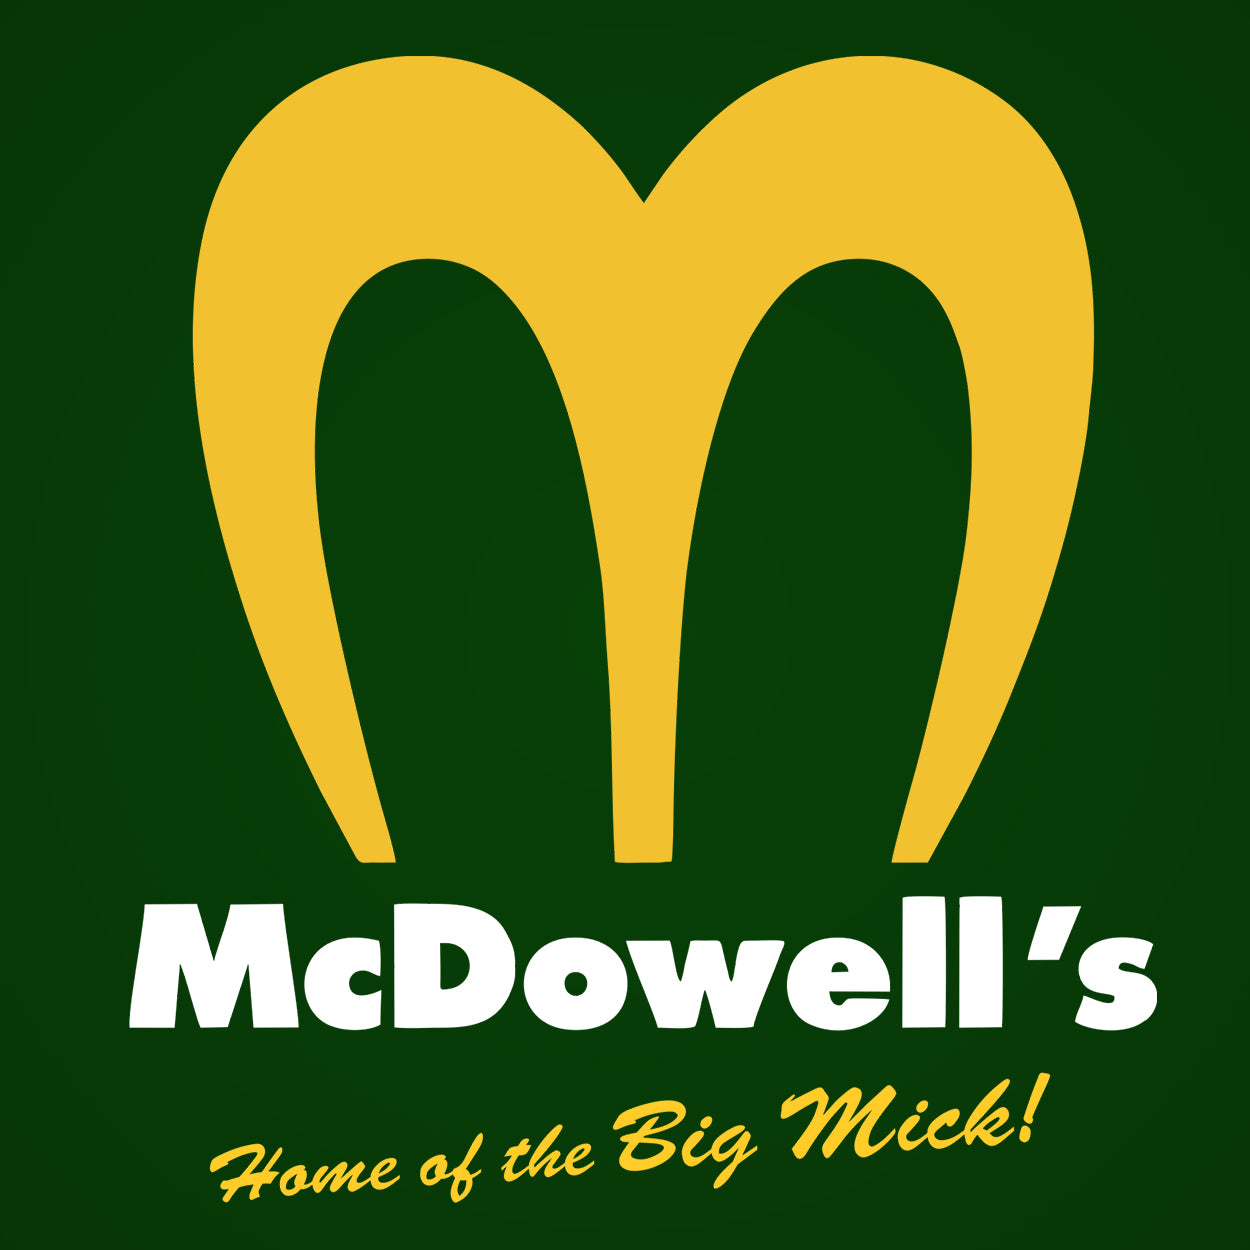 Mc Dowell's Golden Arches